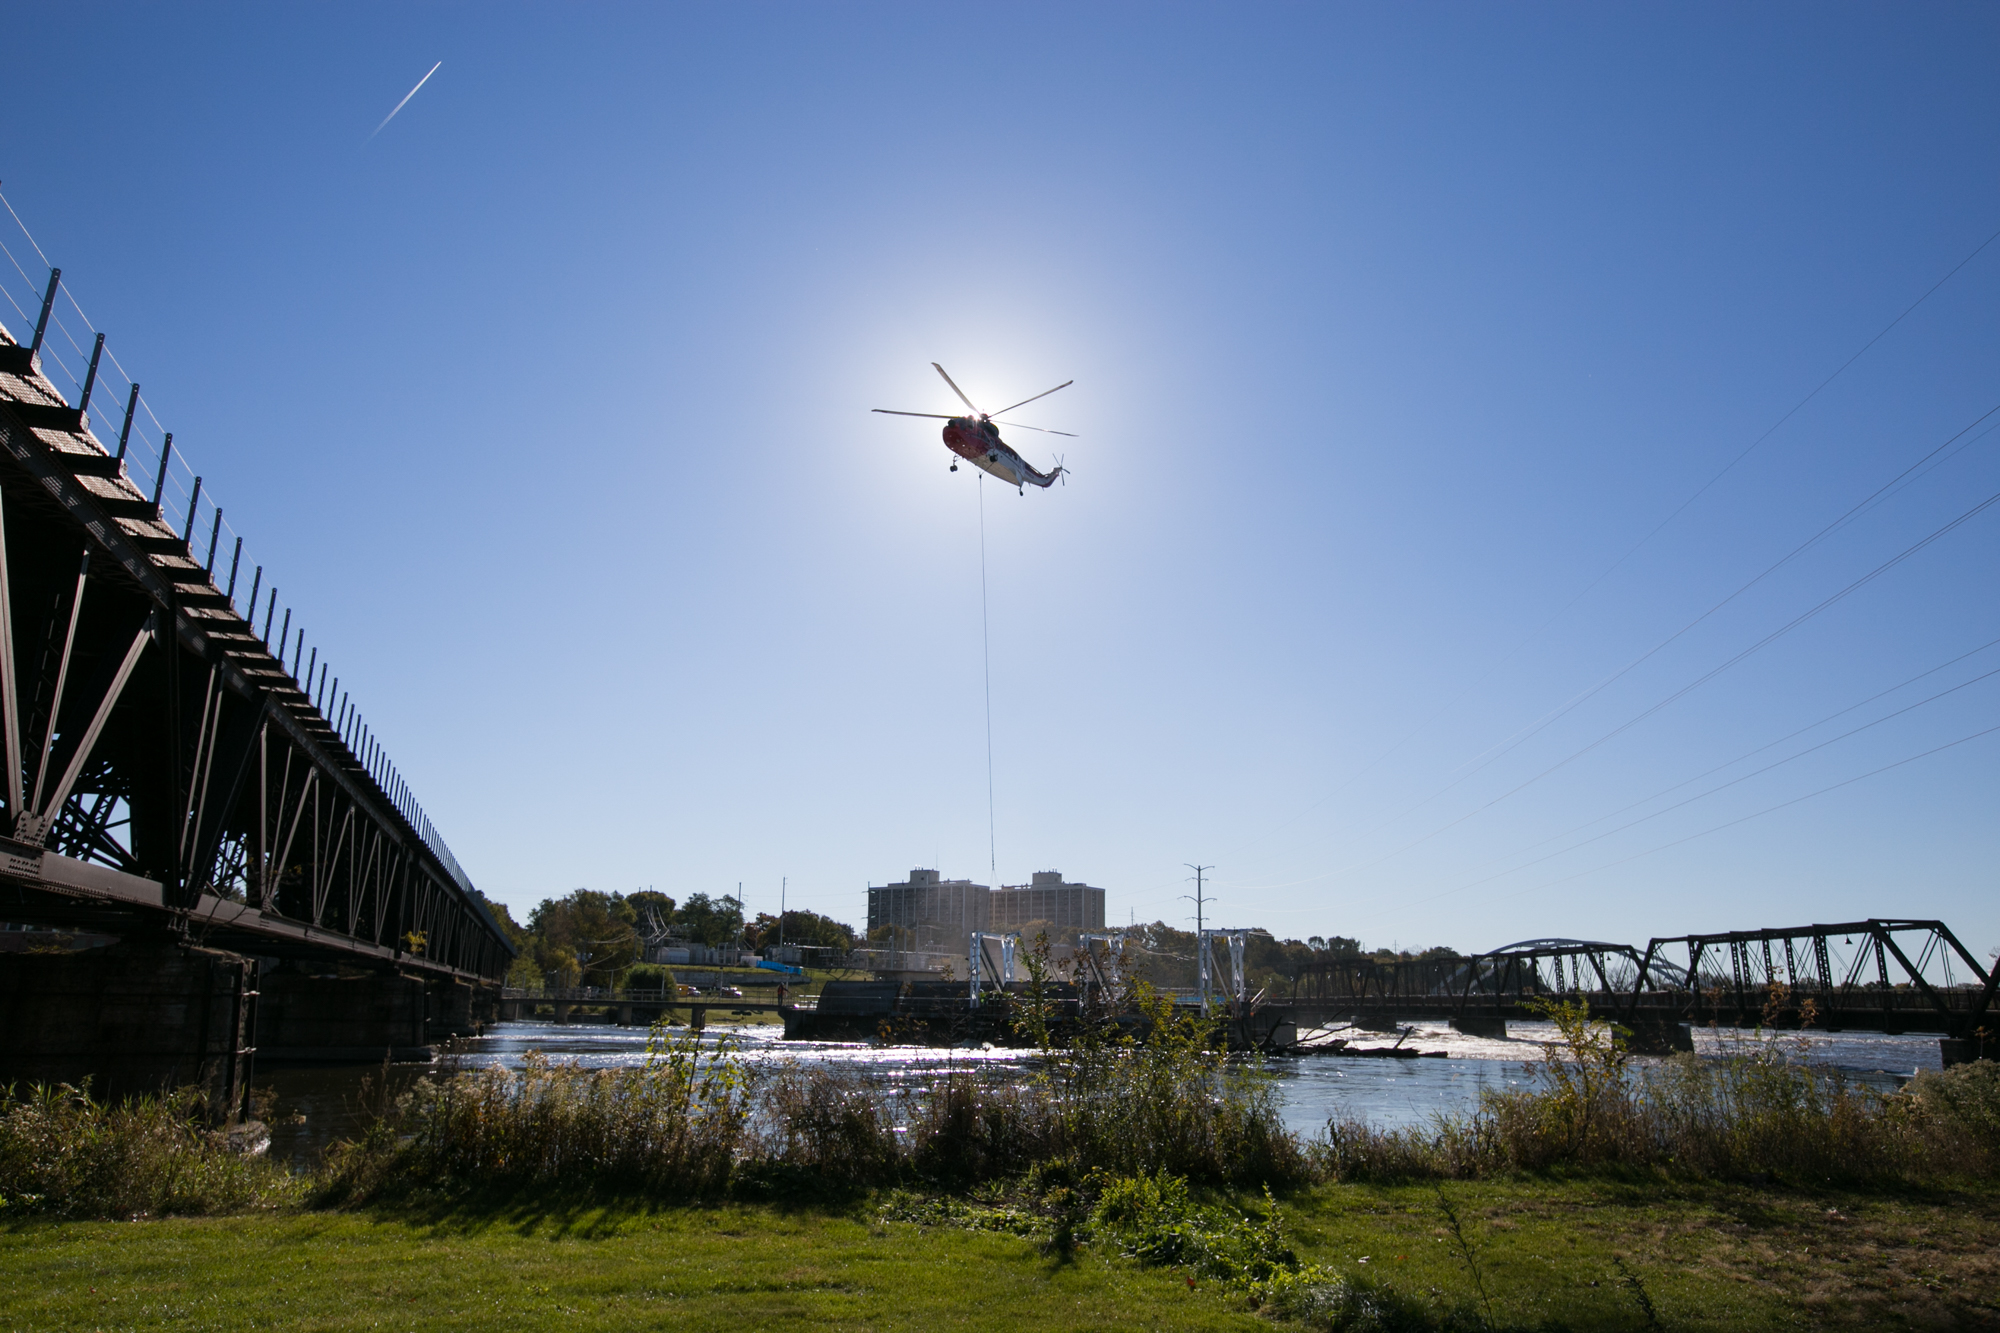 A Sikorsky S-61, piloted by Michael Dreier from Howell, Mich., delivers winch and gantry equipment on Tuesday, Oct. 23, 2018, at Fordam Dam in Rockford. [SCOTT P. YATES/RRSTAR.COM STAFF]